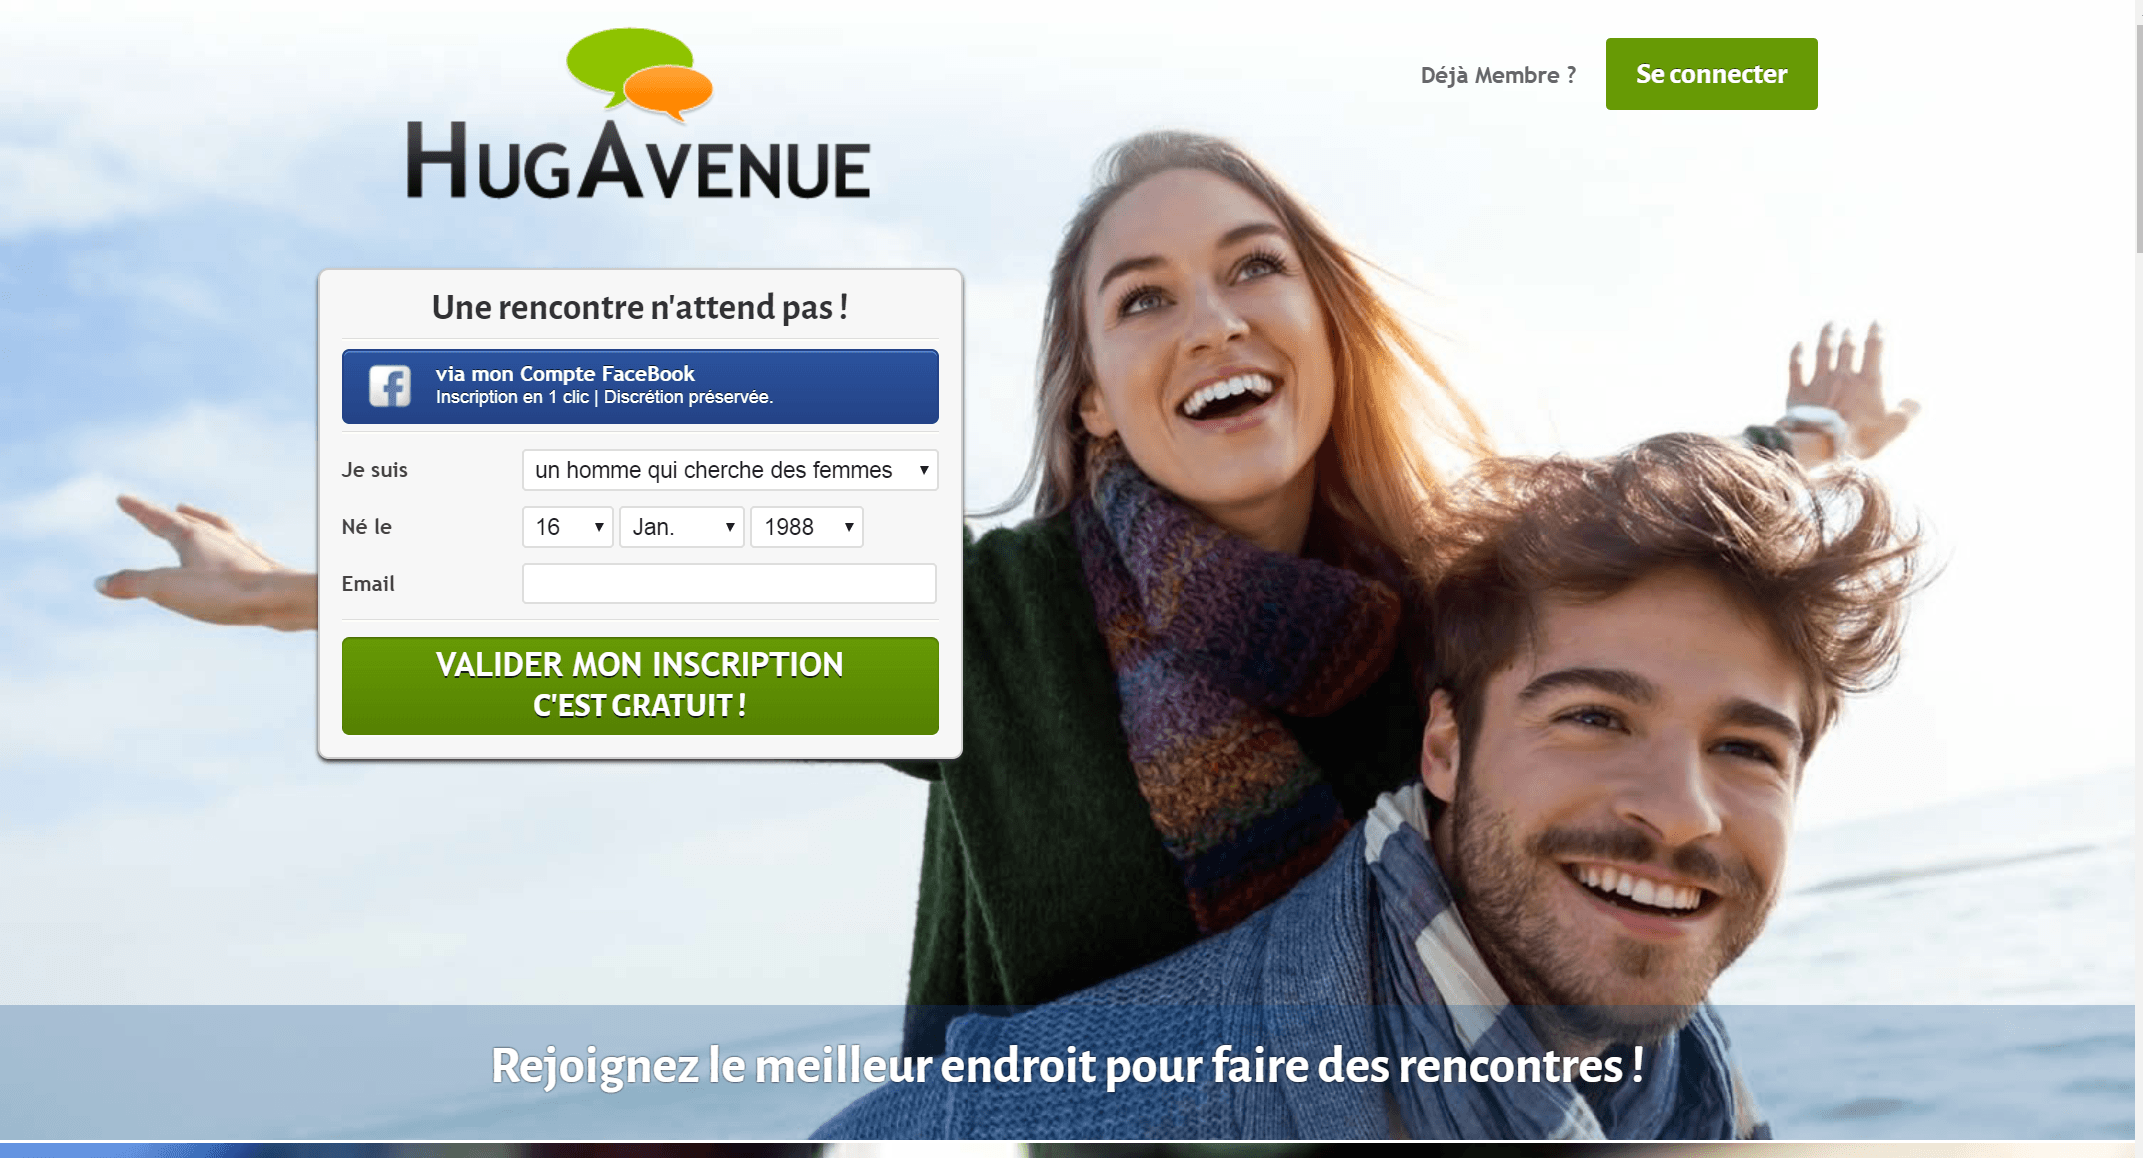 Most Popular Dating Site In France